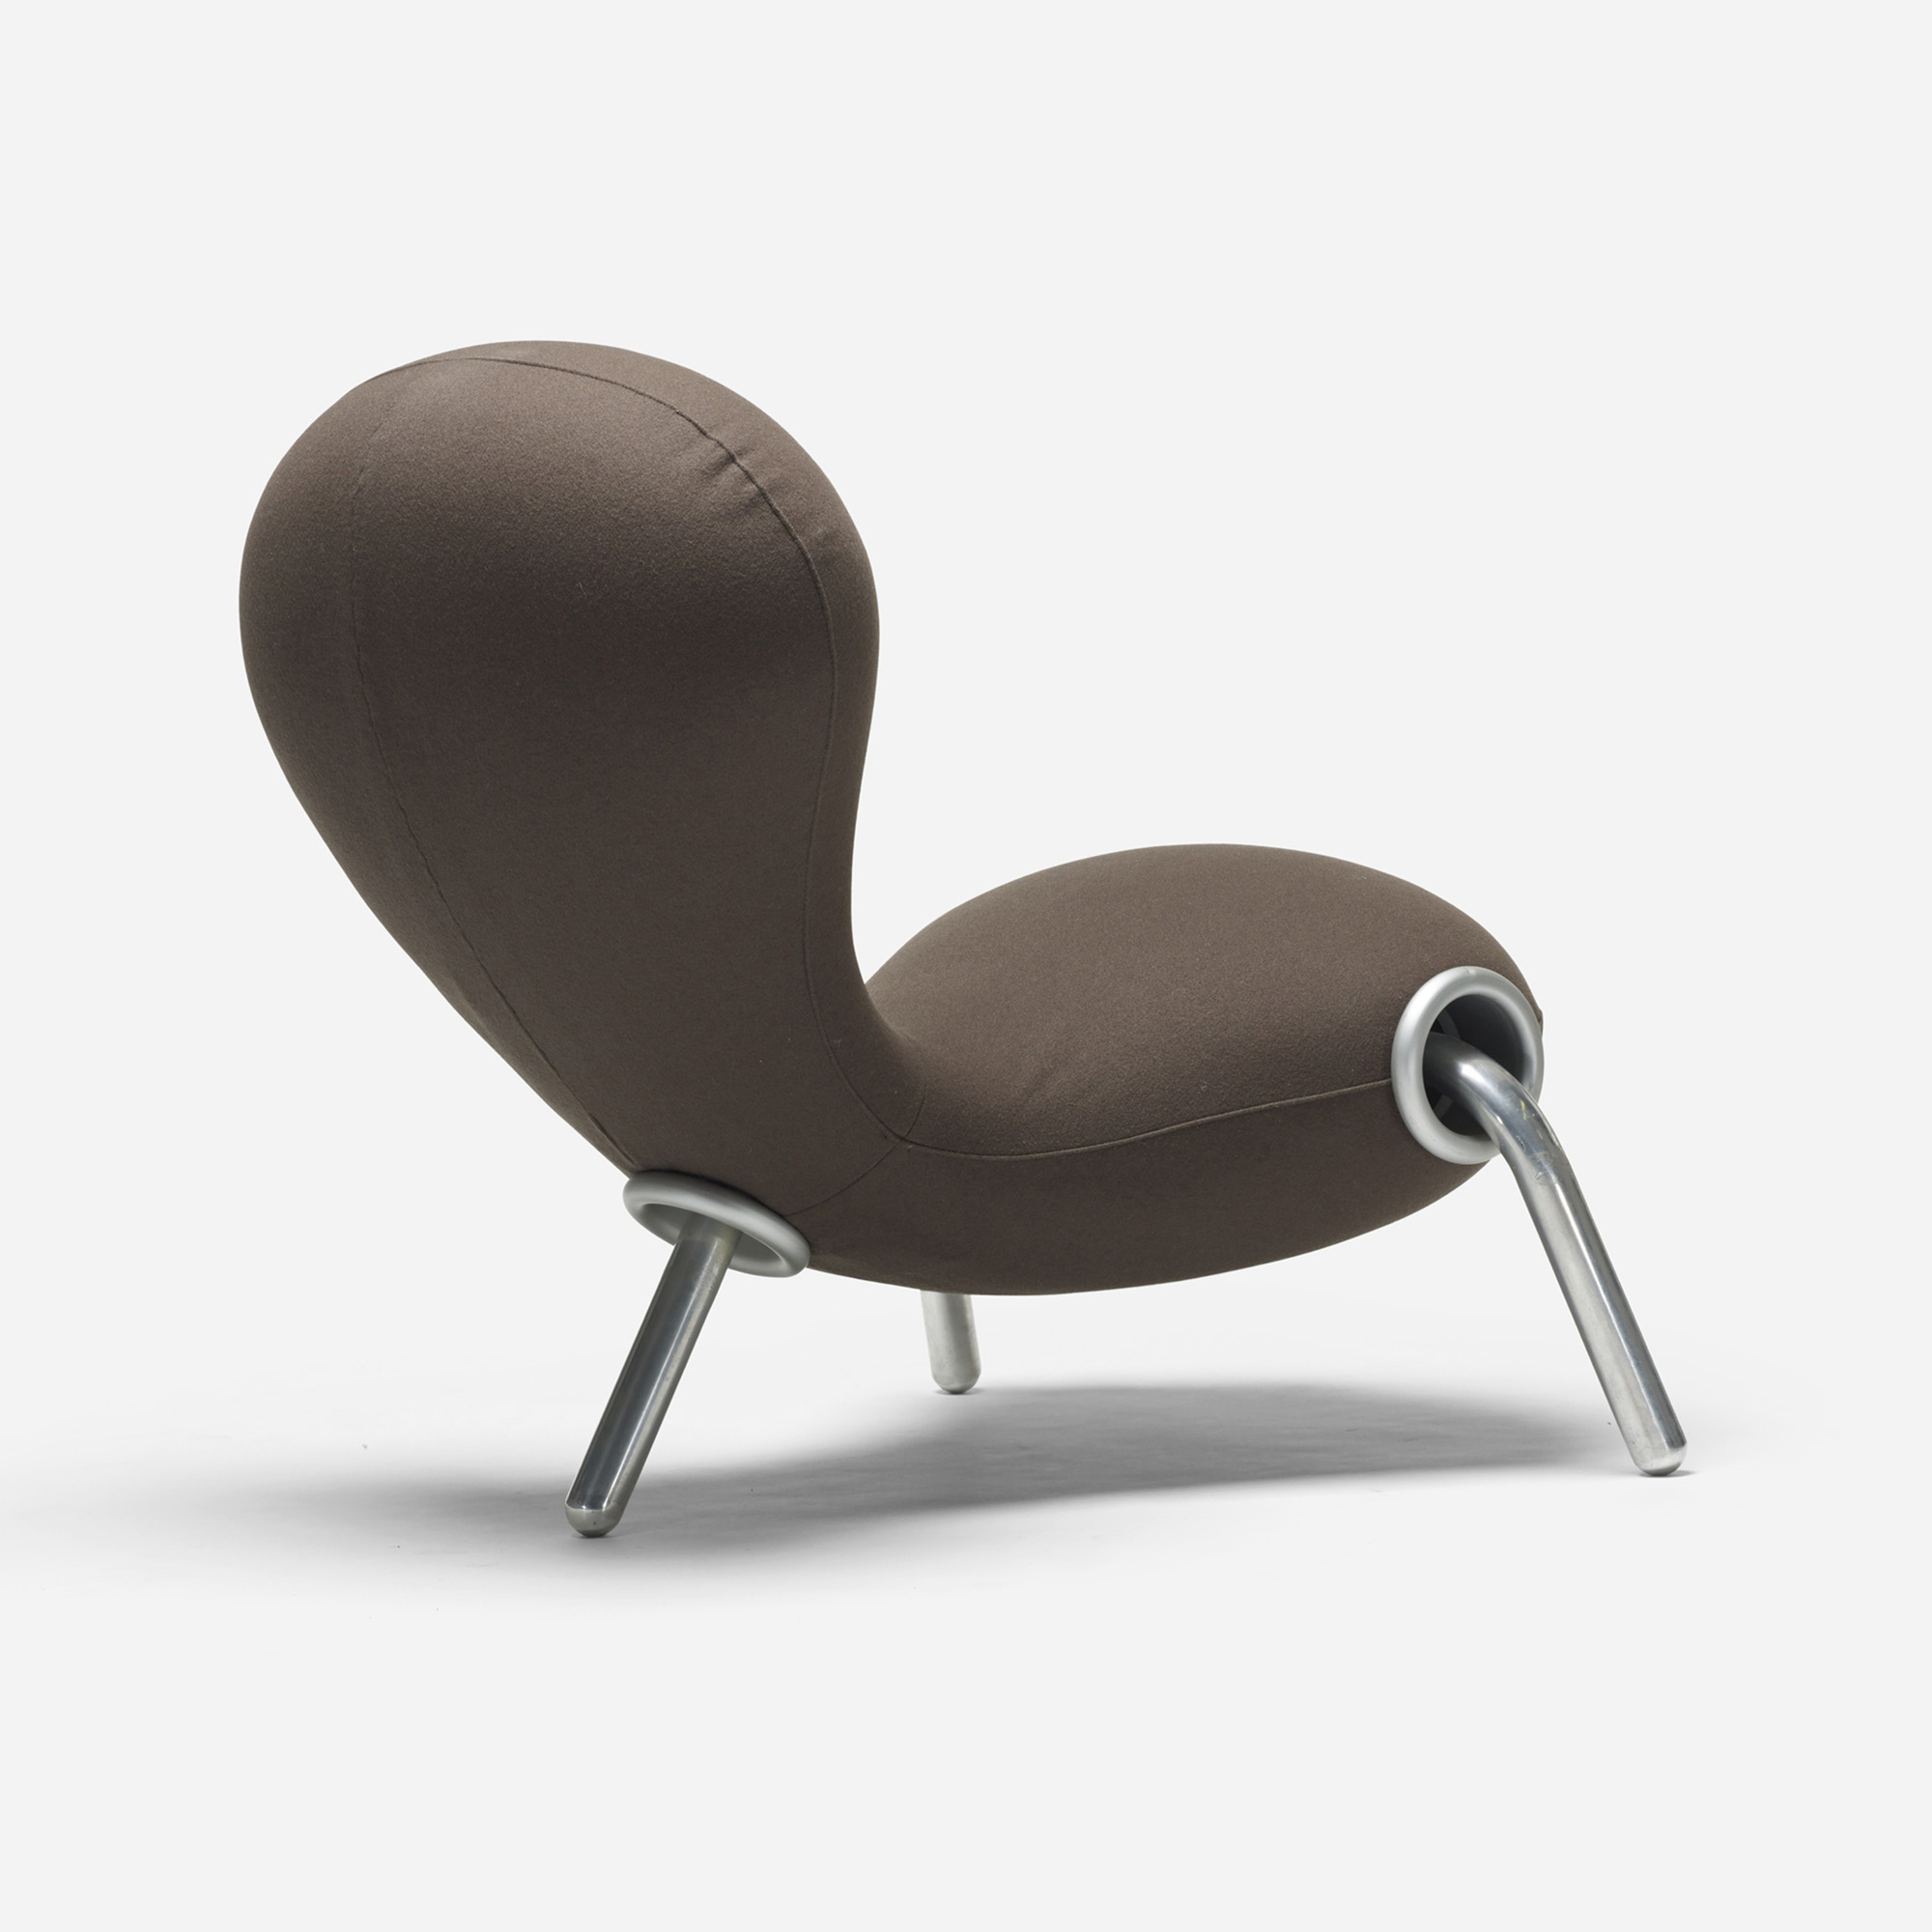 209: Marc Newson / Embryo chair (1 of 2)